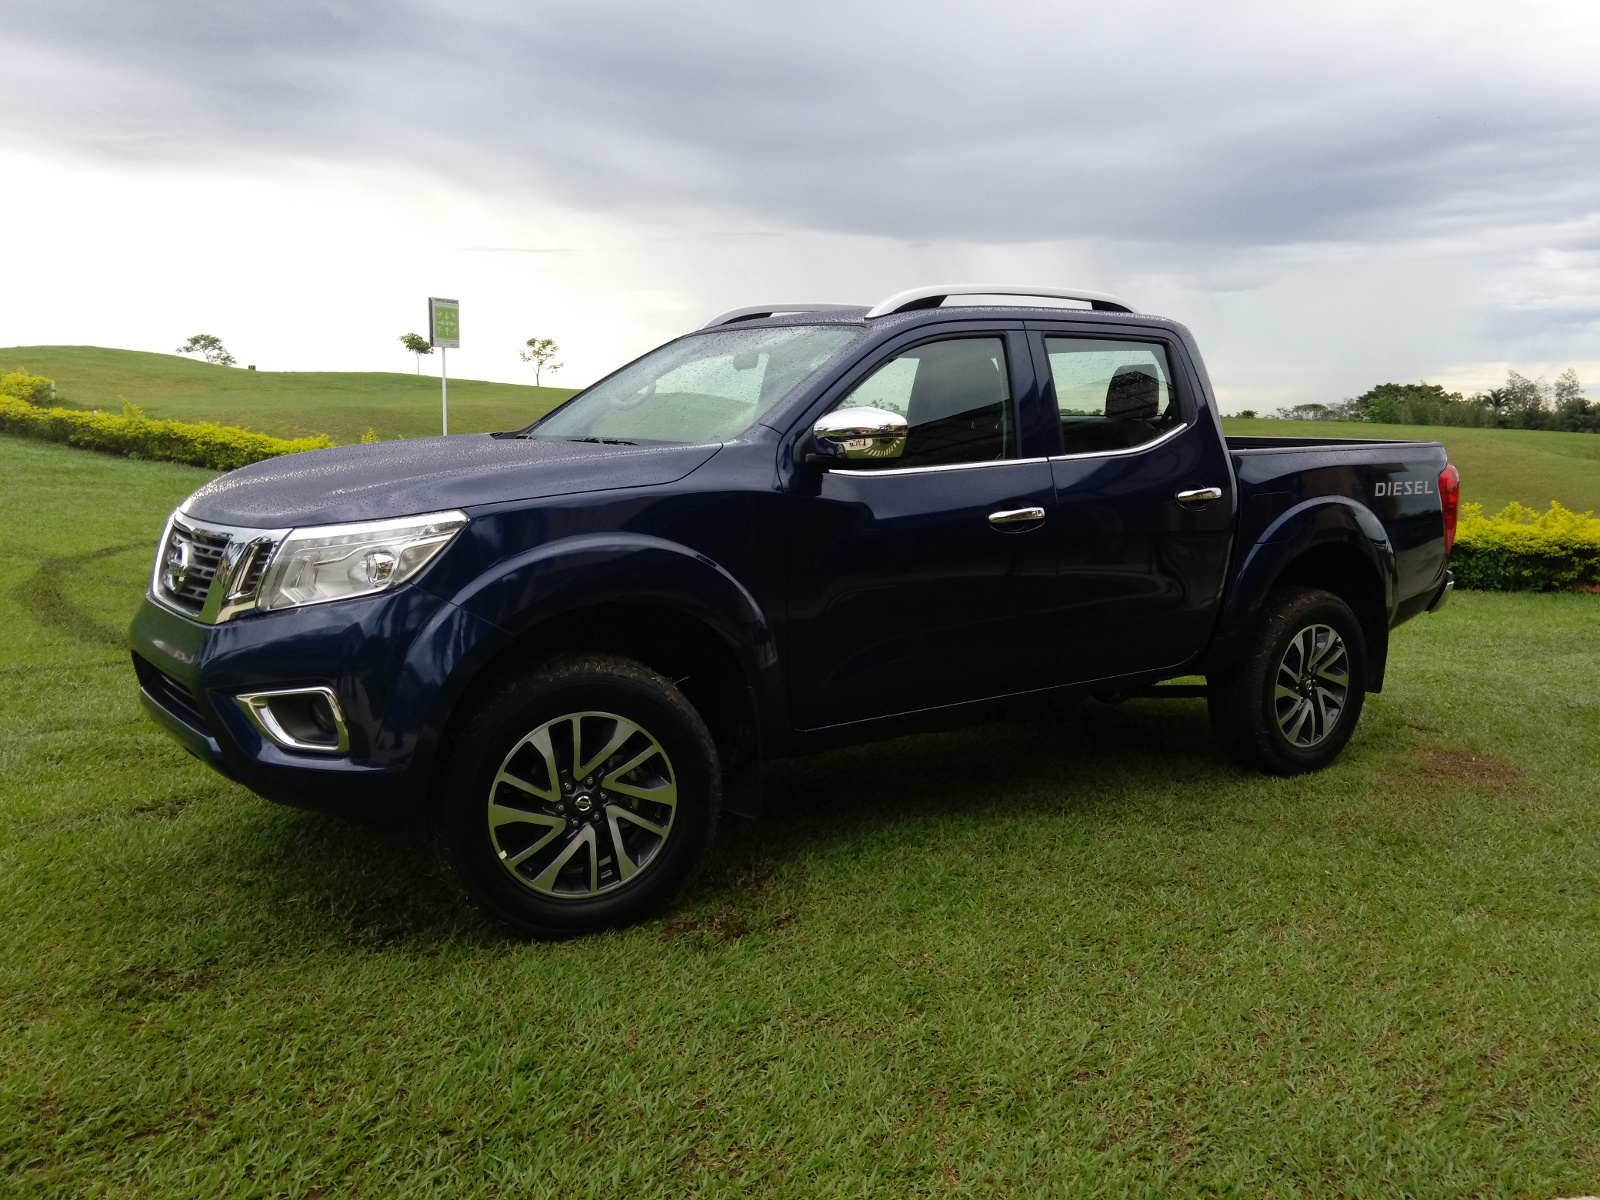 v6 nissan navara diesel autos post. Black Bedroom Furniture Sets. Home Design Ideas